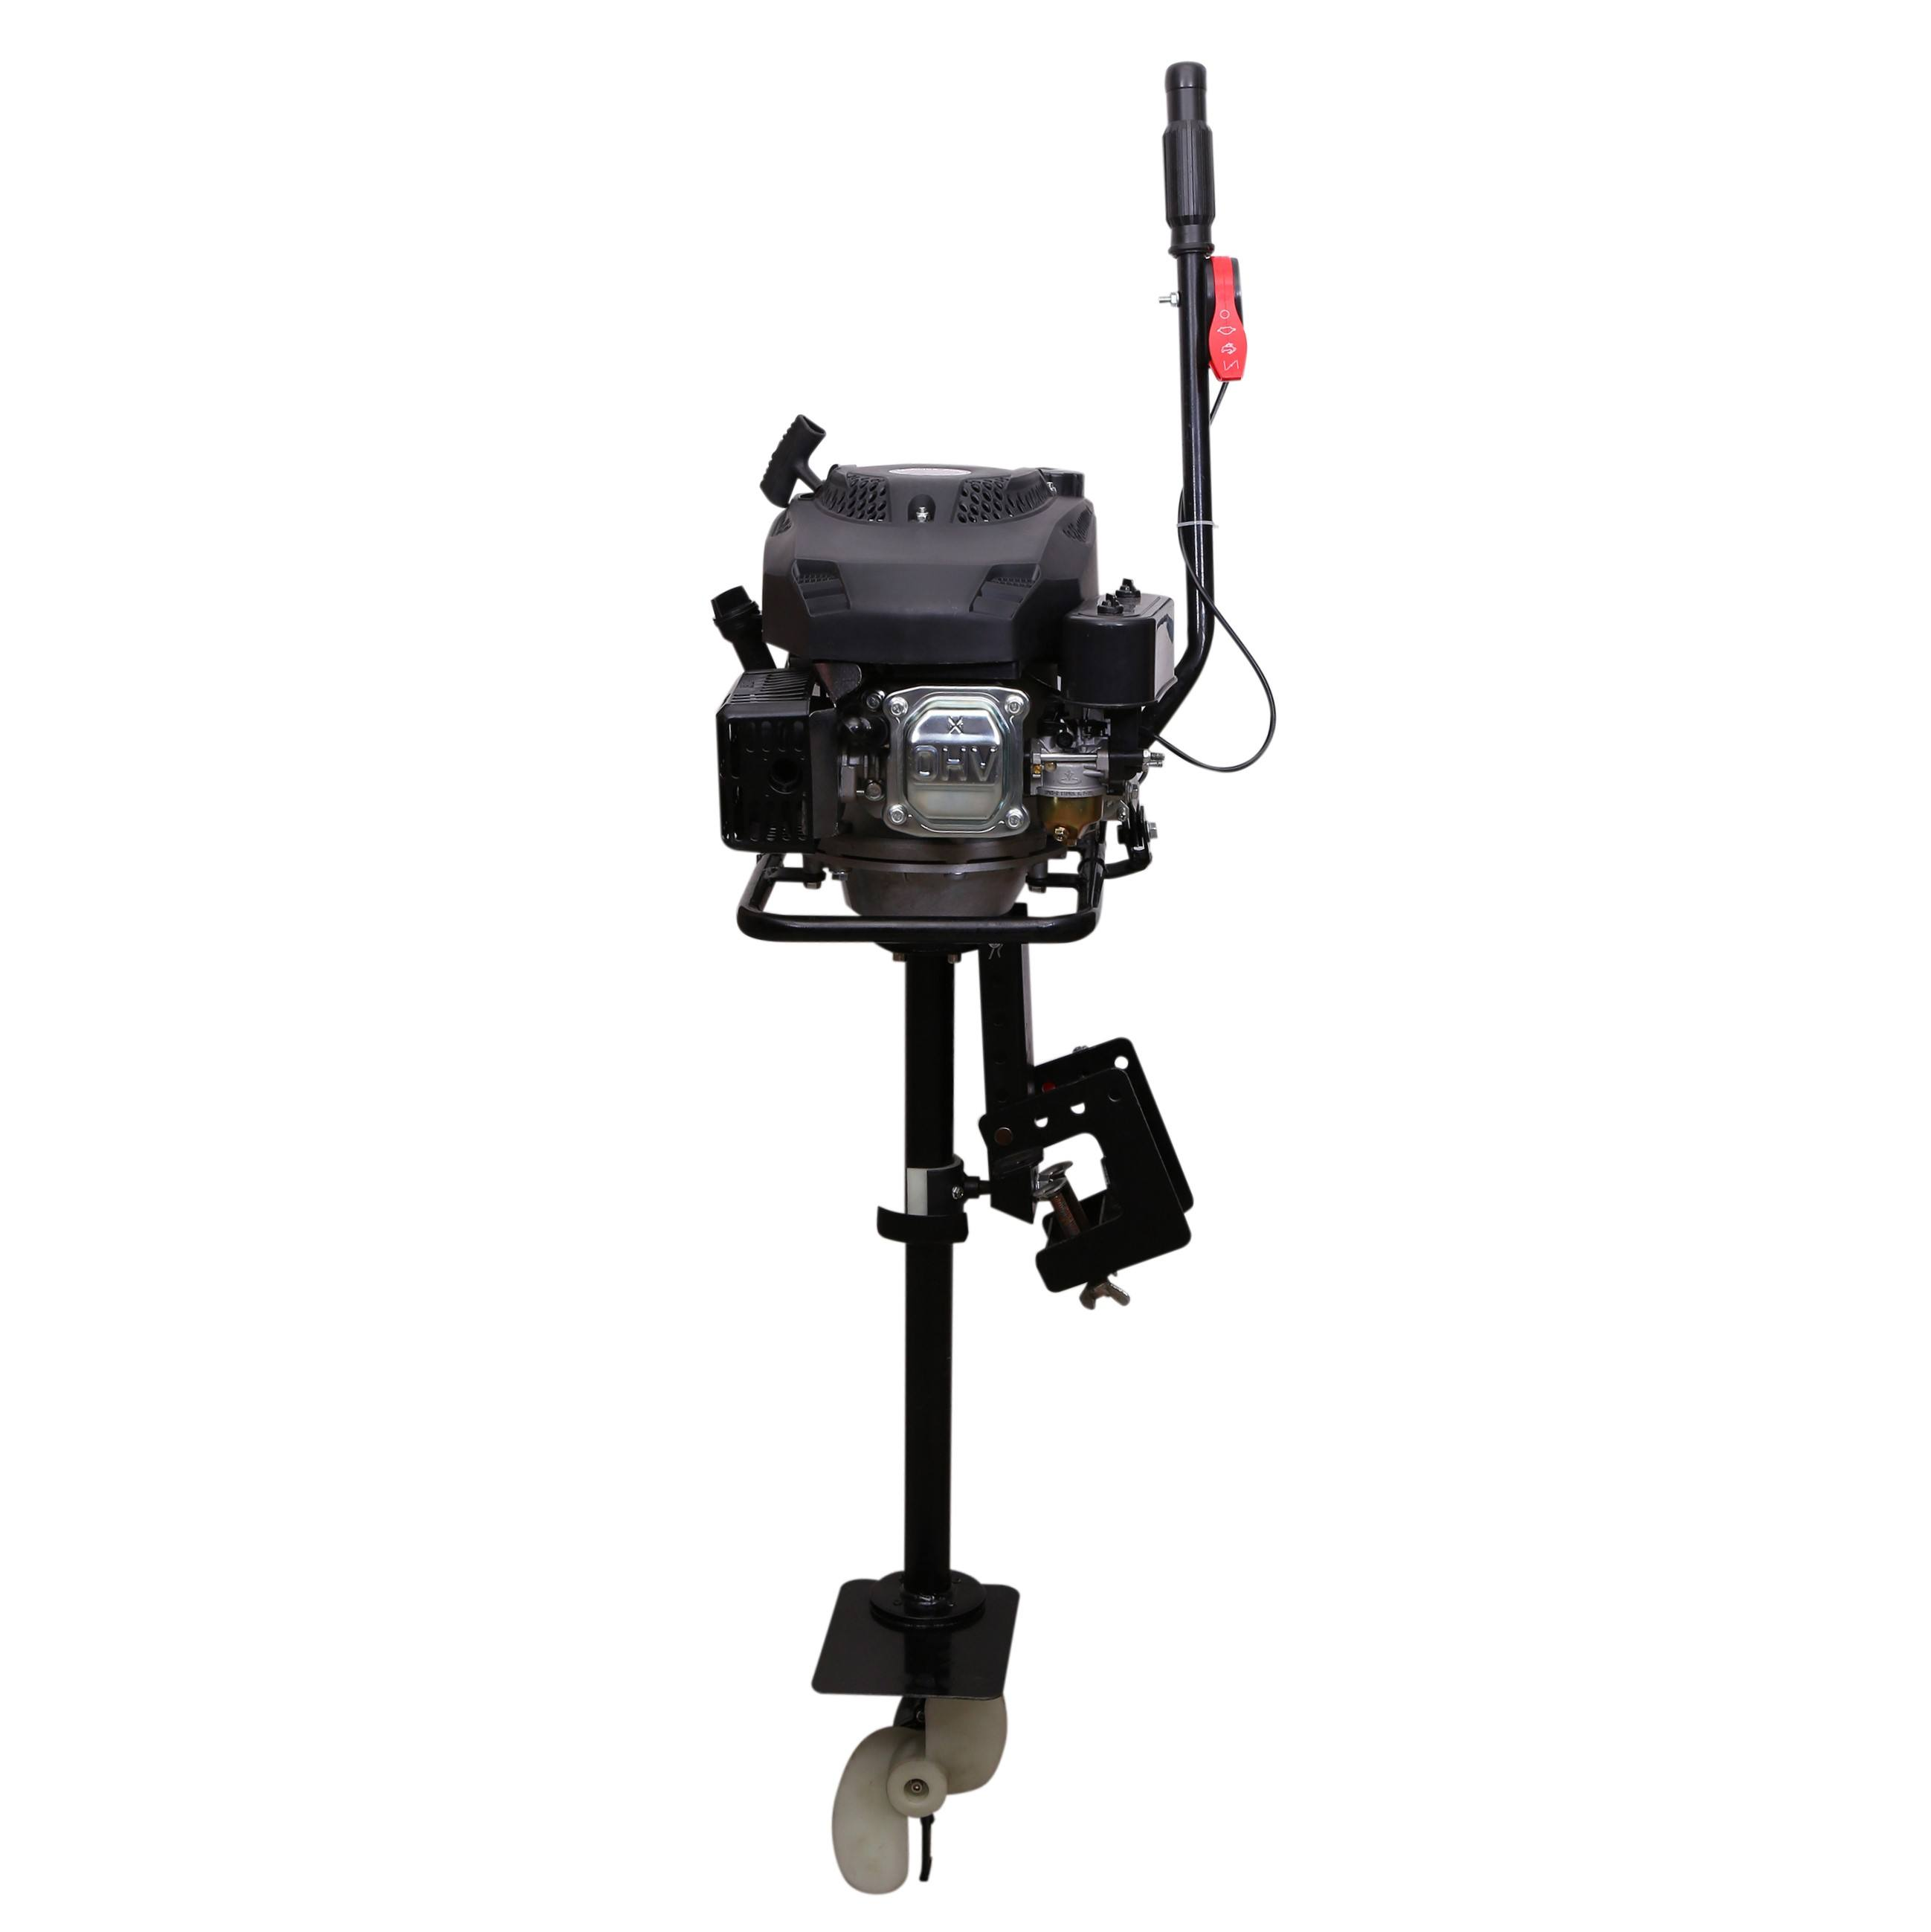 Wholesale professional outboard 4 stroke metal boat engine, manufacture 139cc speed boat engine, new cheap electric boat engine